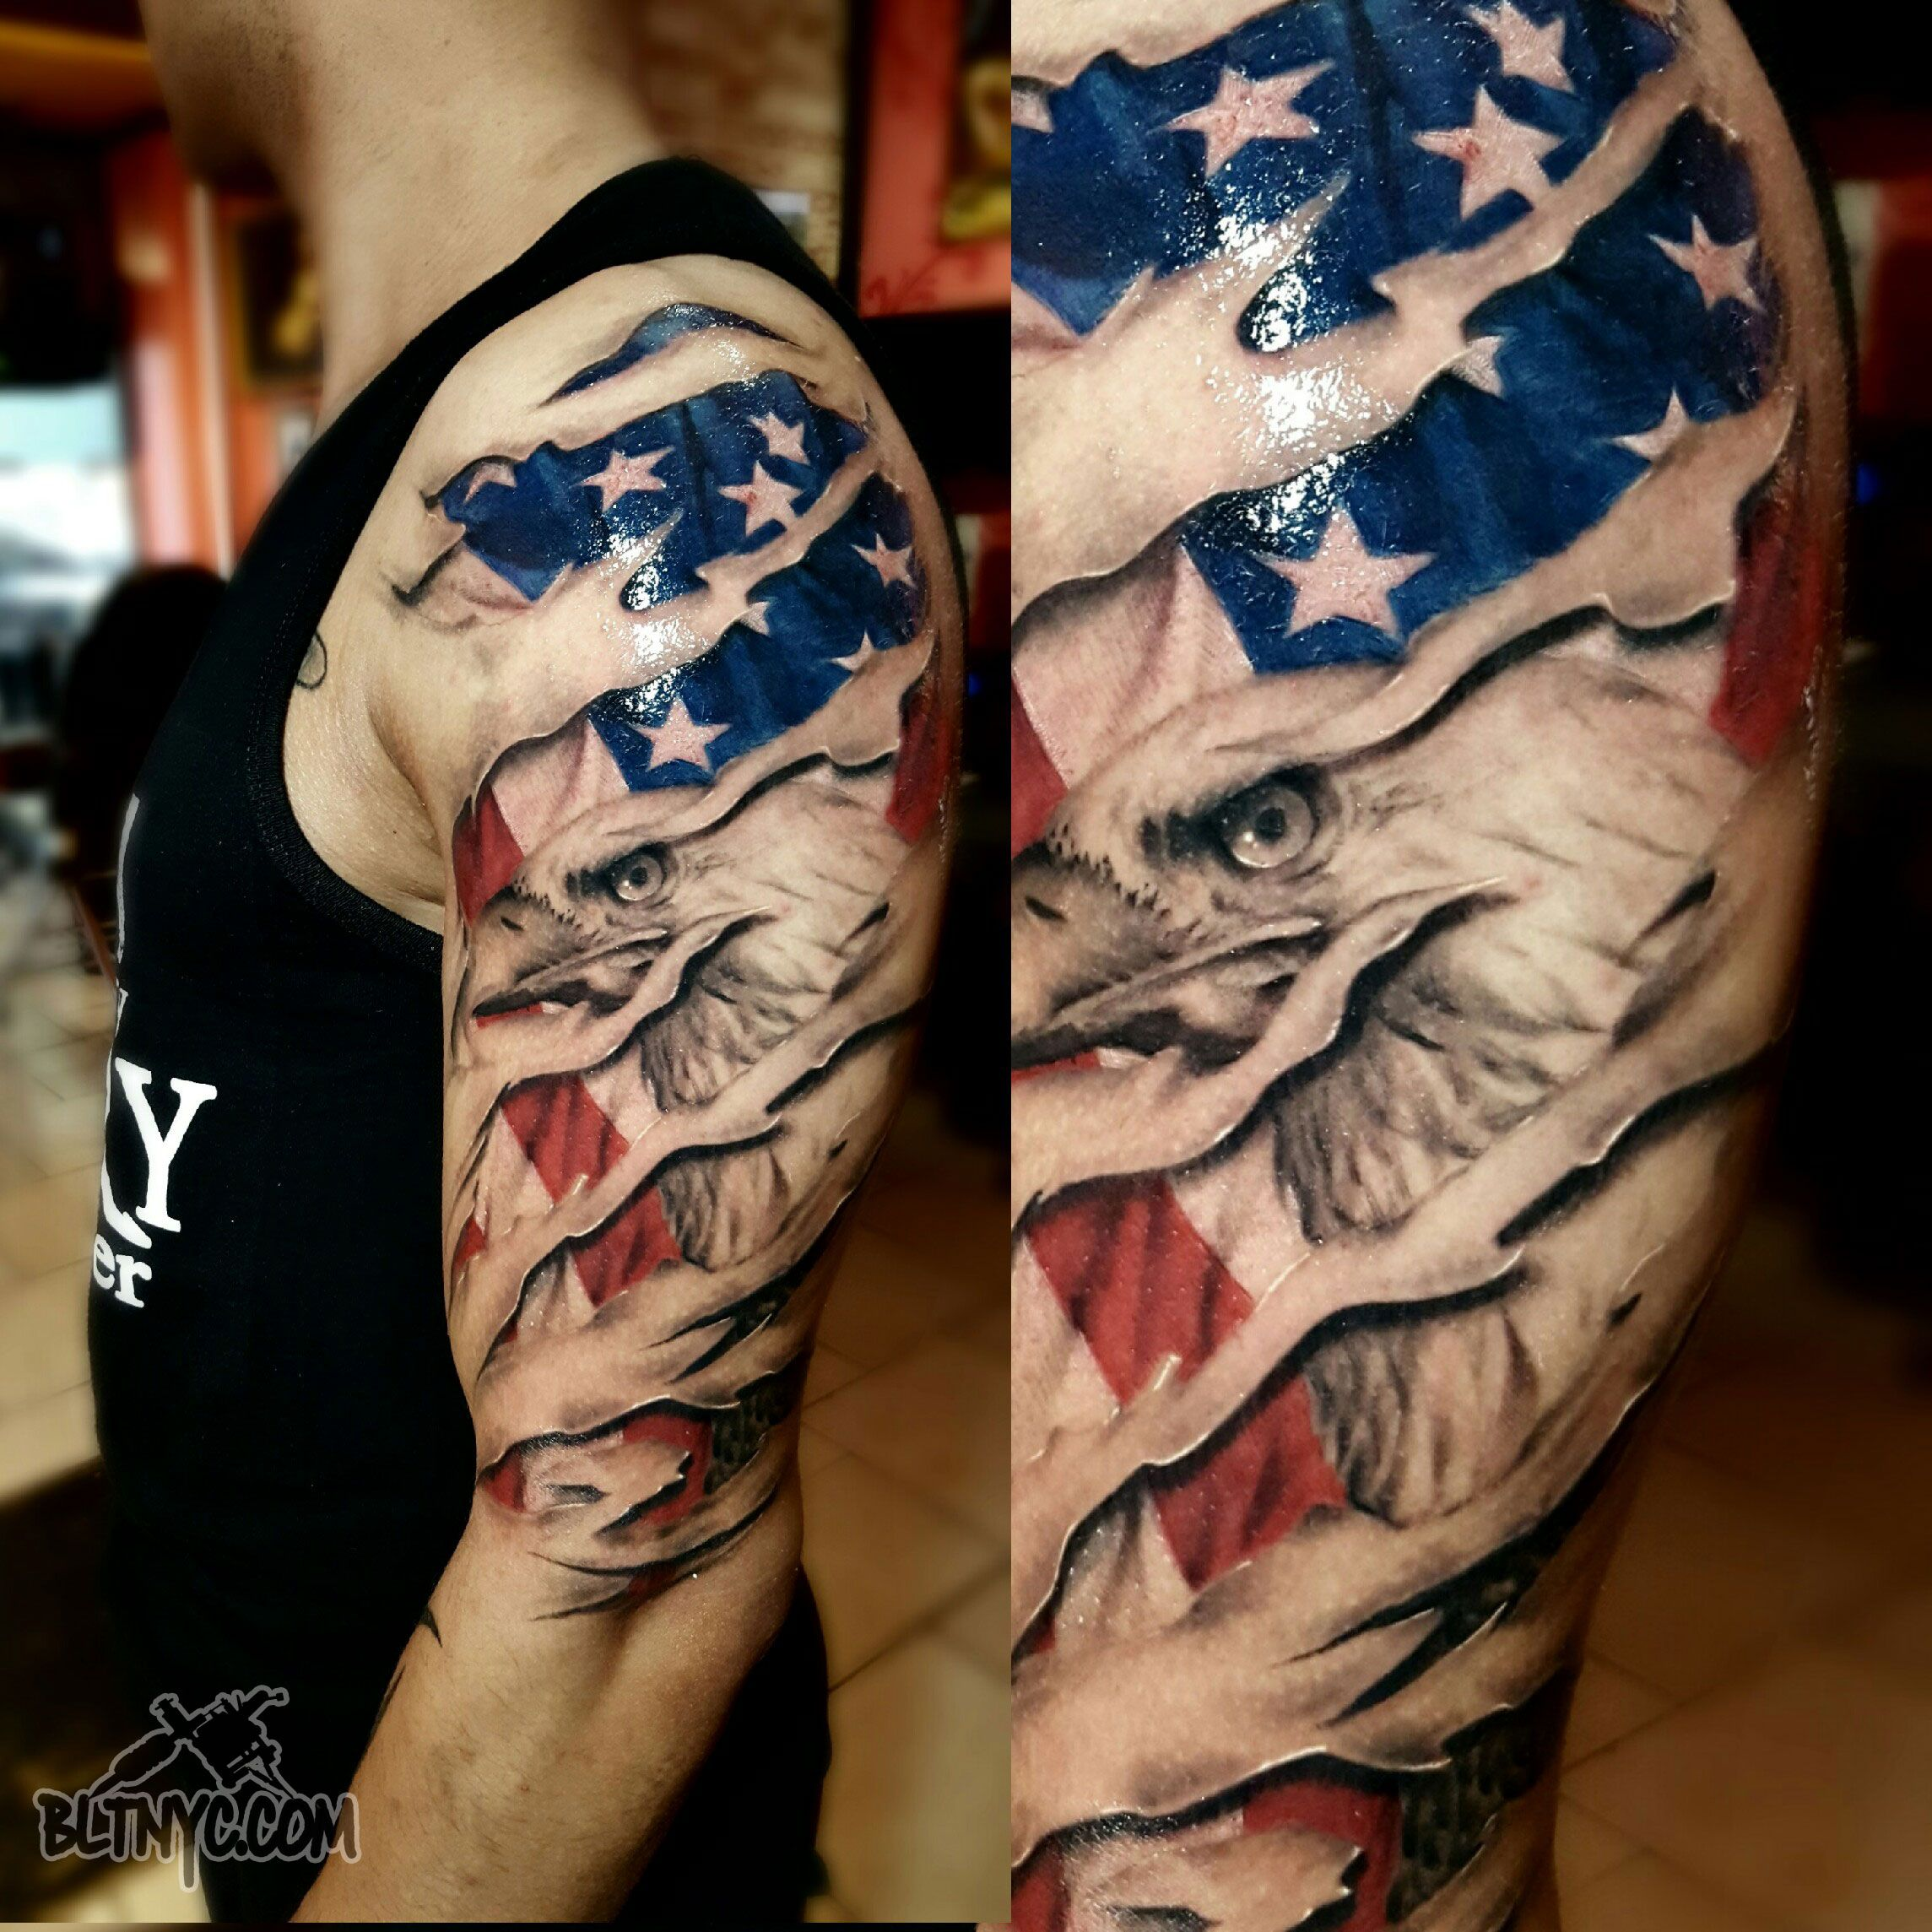 Shredded Skin With American Flag And Eagle Tattoo By Carlos At Bltnyc Tattoo Shop Astoria Queens Americanflag Patriotic Eagletattoo Tattoo